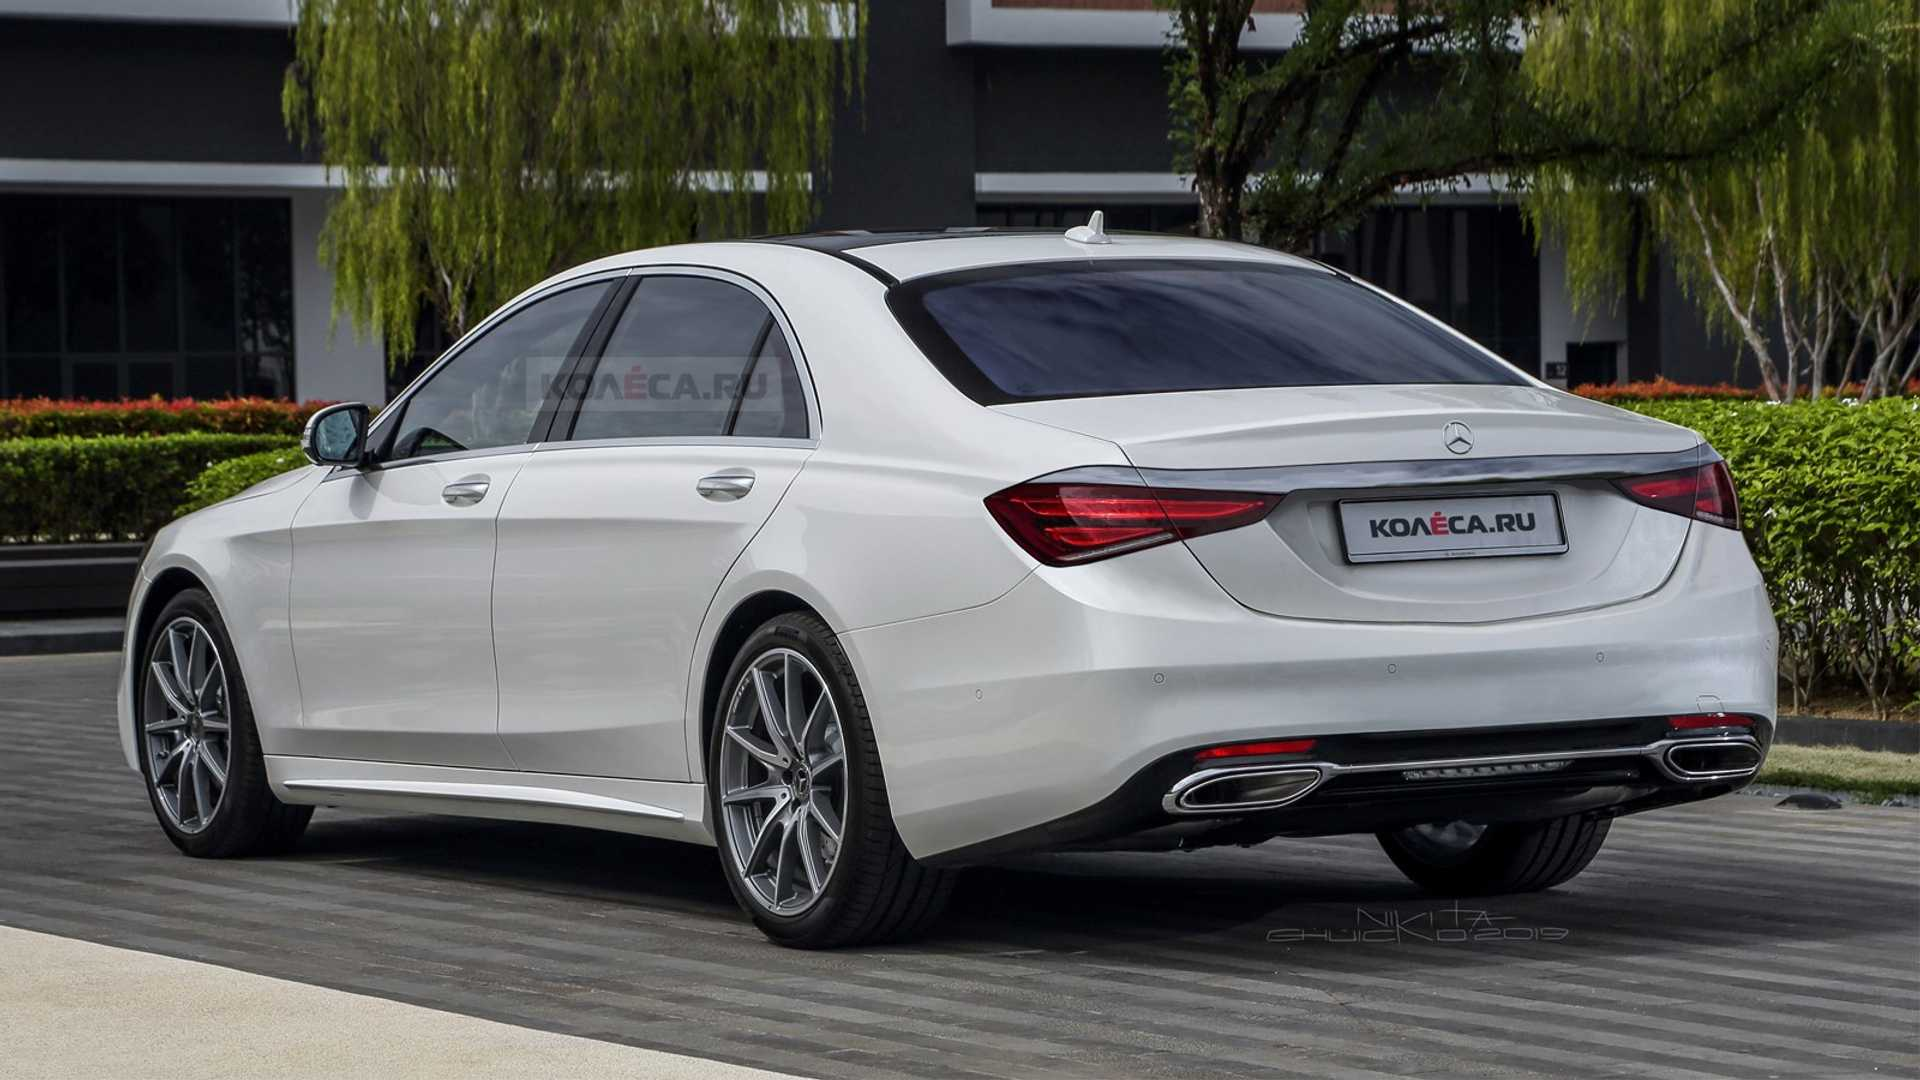 79 New 2020 Mercedes Cls Class Release Date And Concept